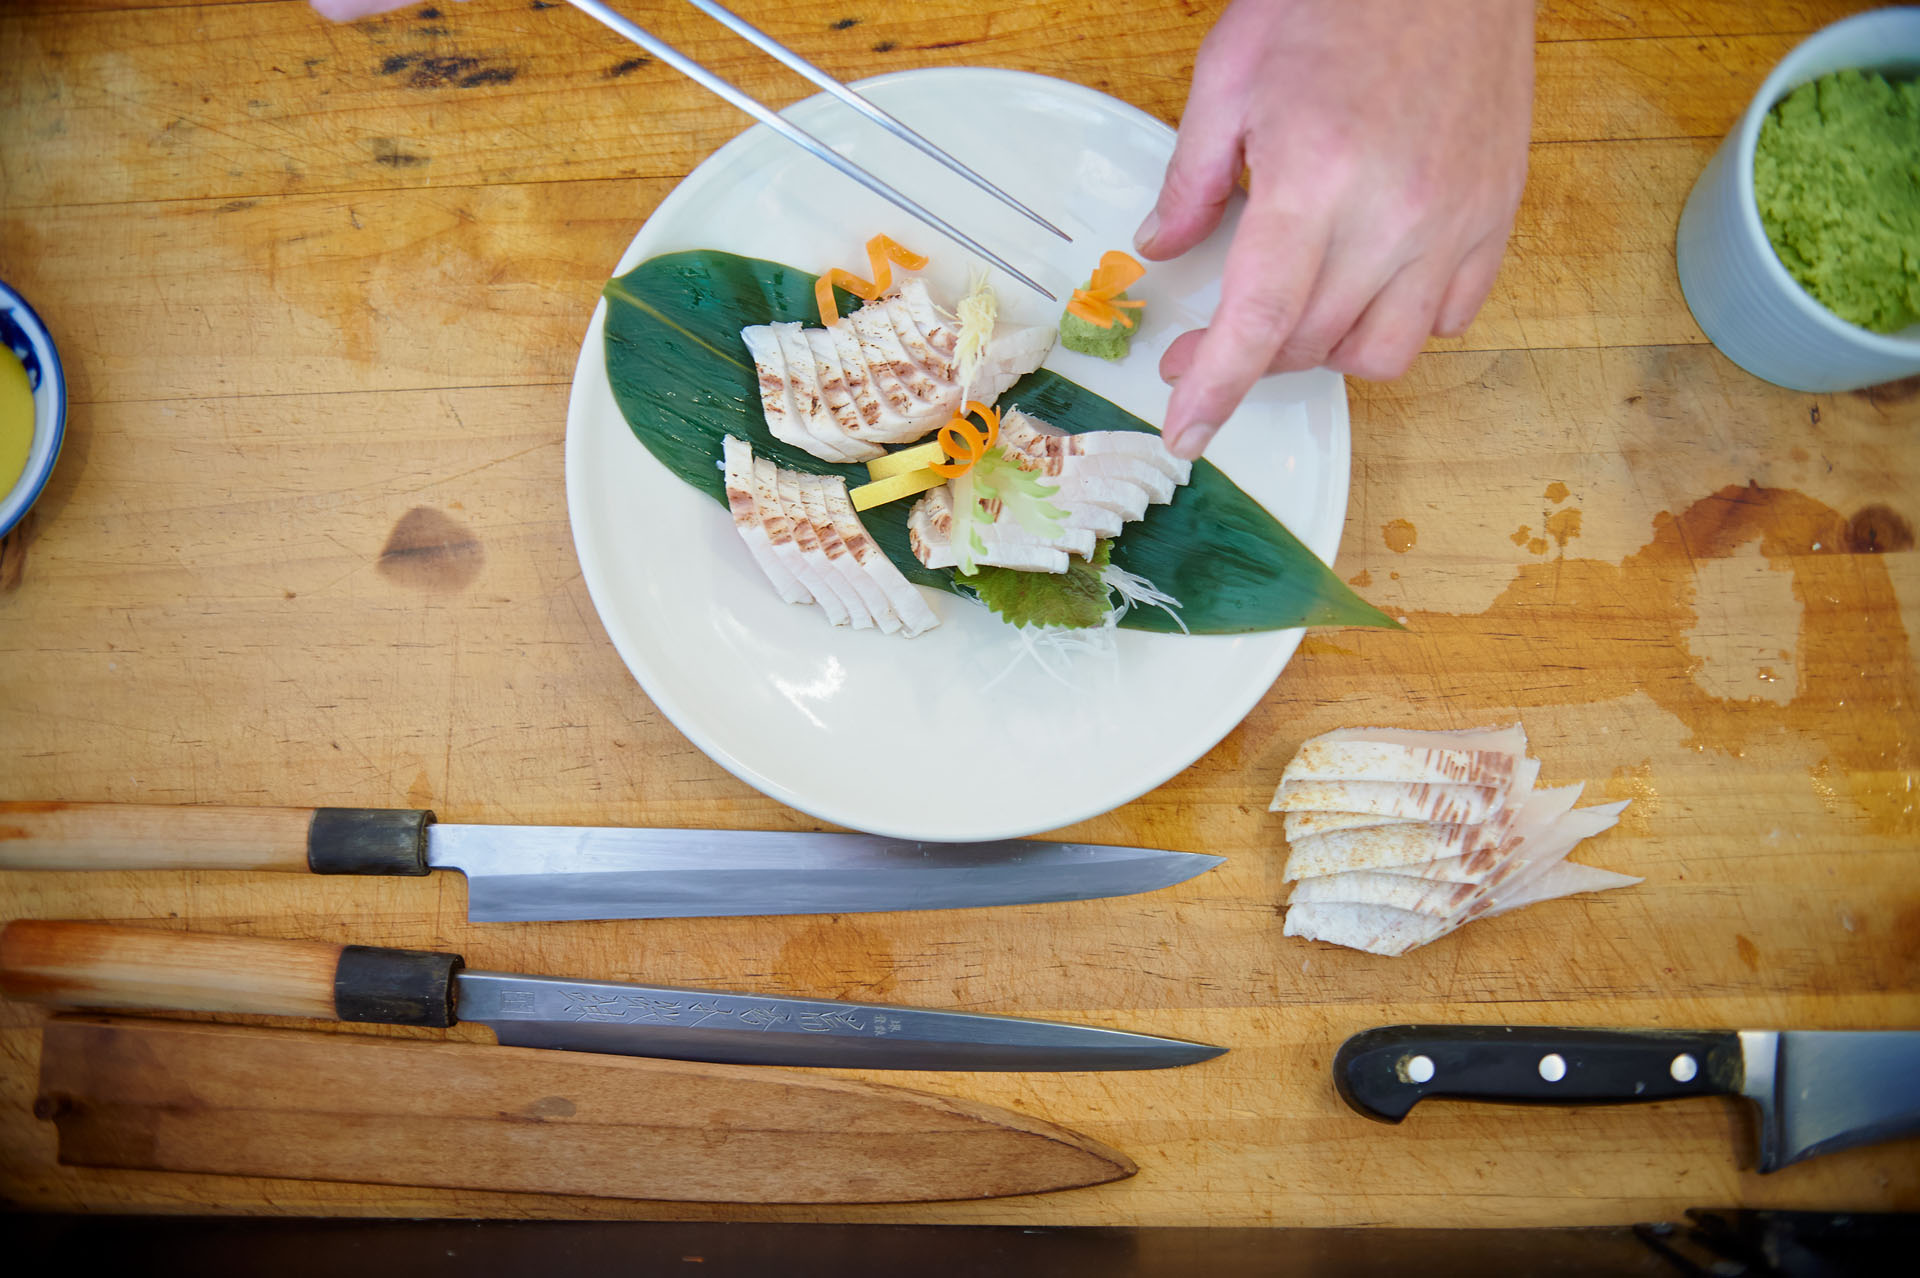 Photographs of Chefs preparing Cobia for Pacific Reef Fisheries